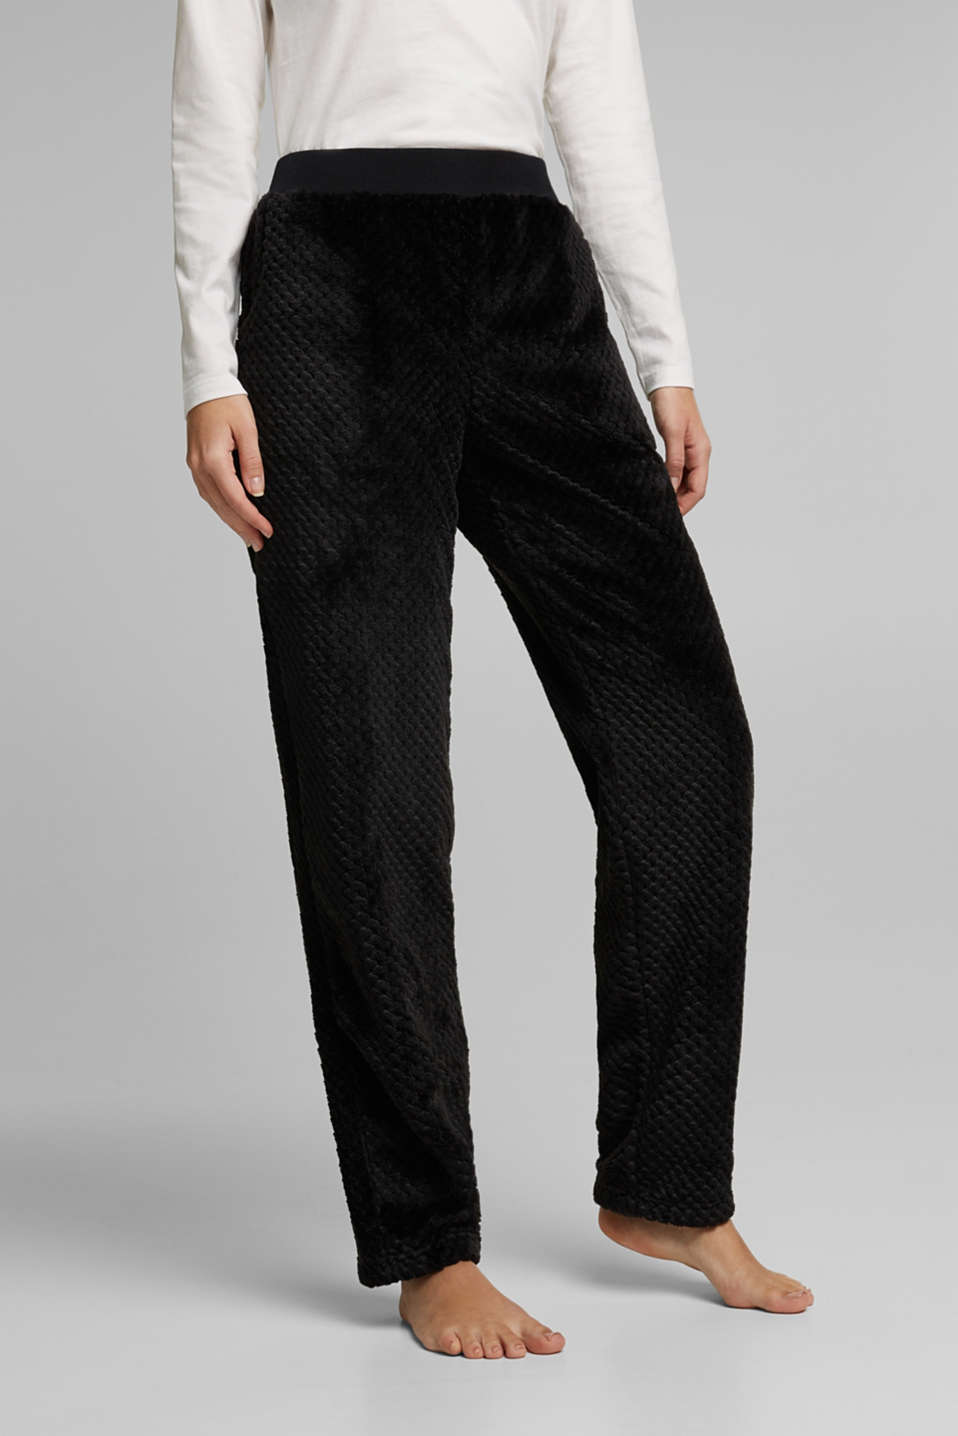 Esprit - Soft lounge trousers made of textured plush